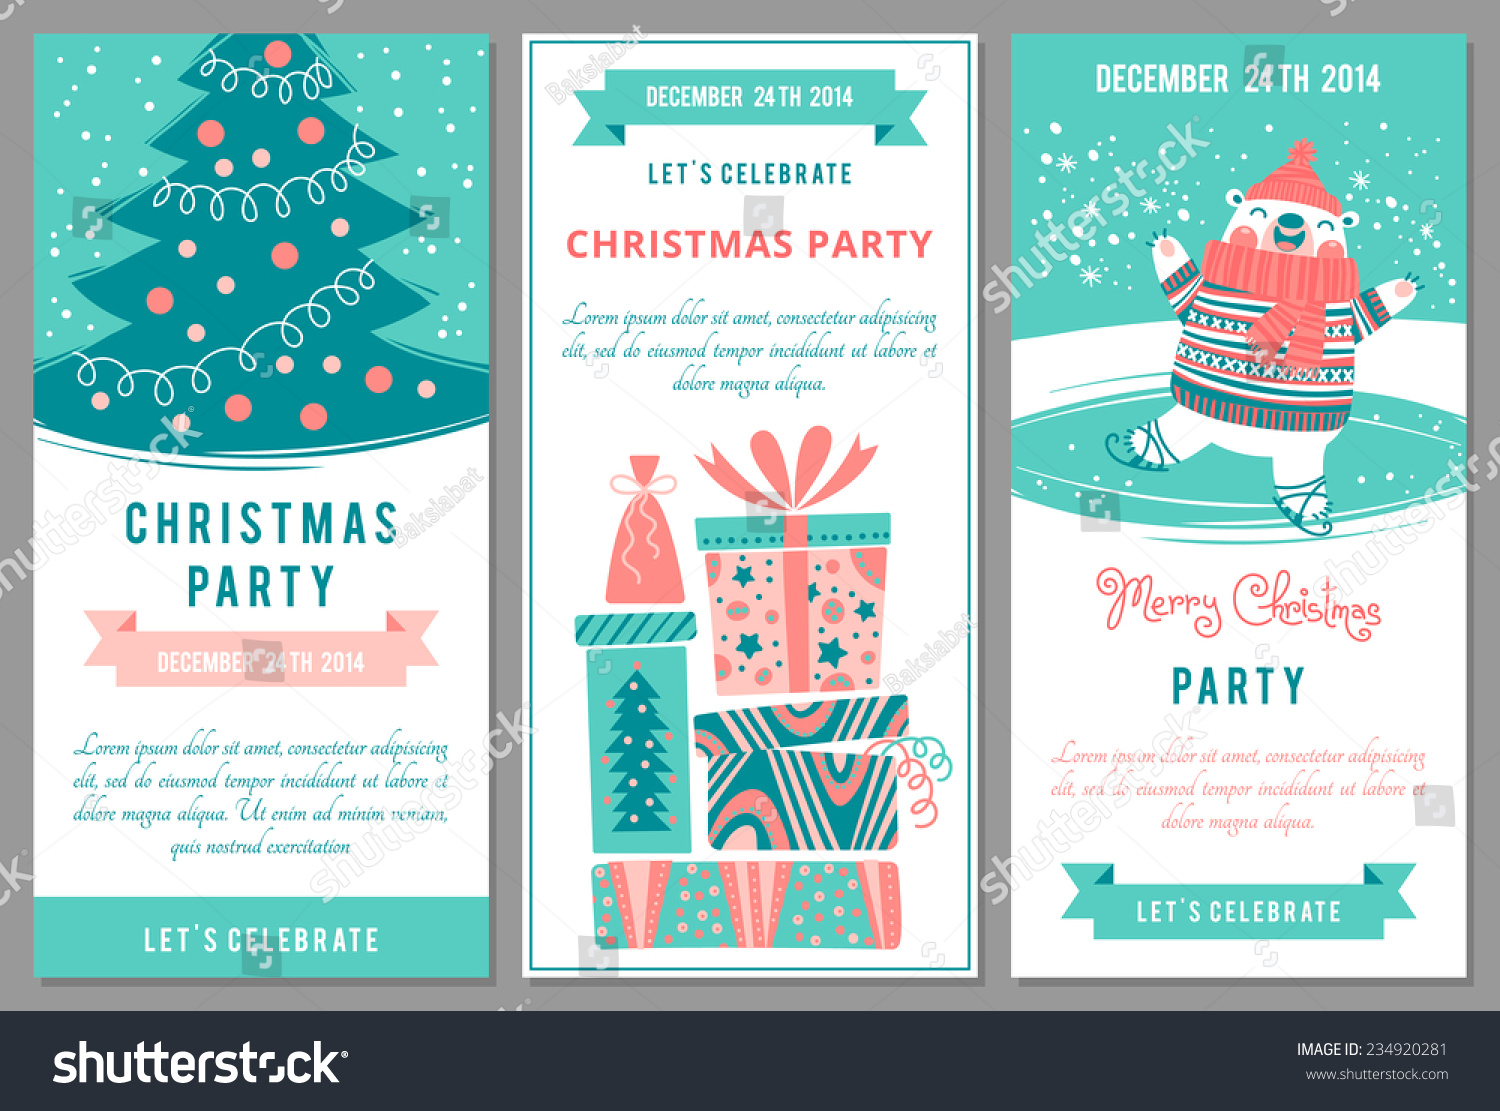 Christmas Party Invitations Cartoon Style Vector Vector – Xmas Party Invitations